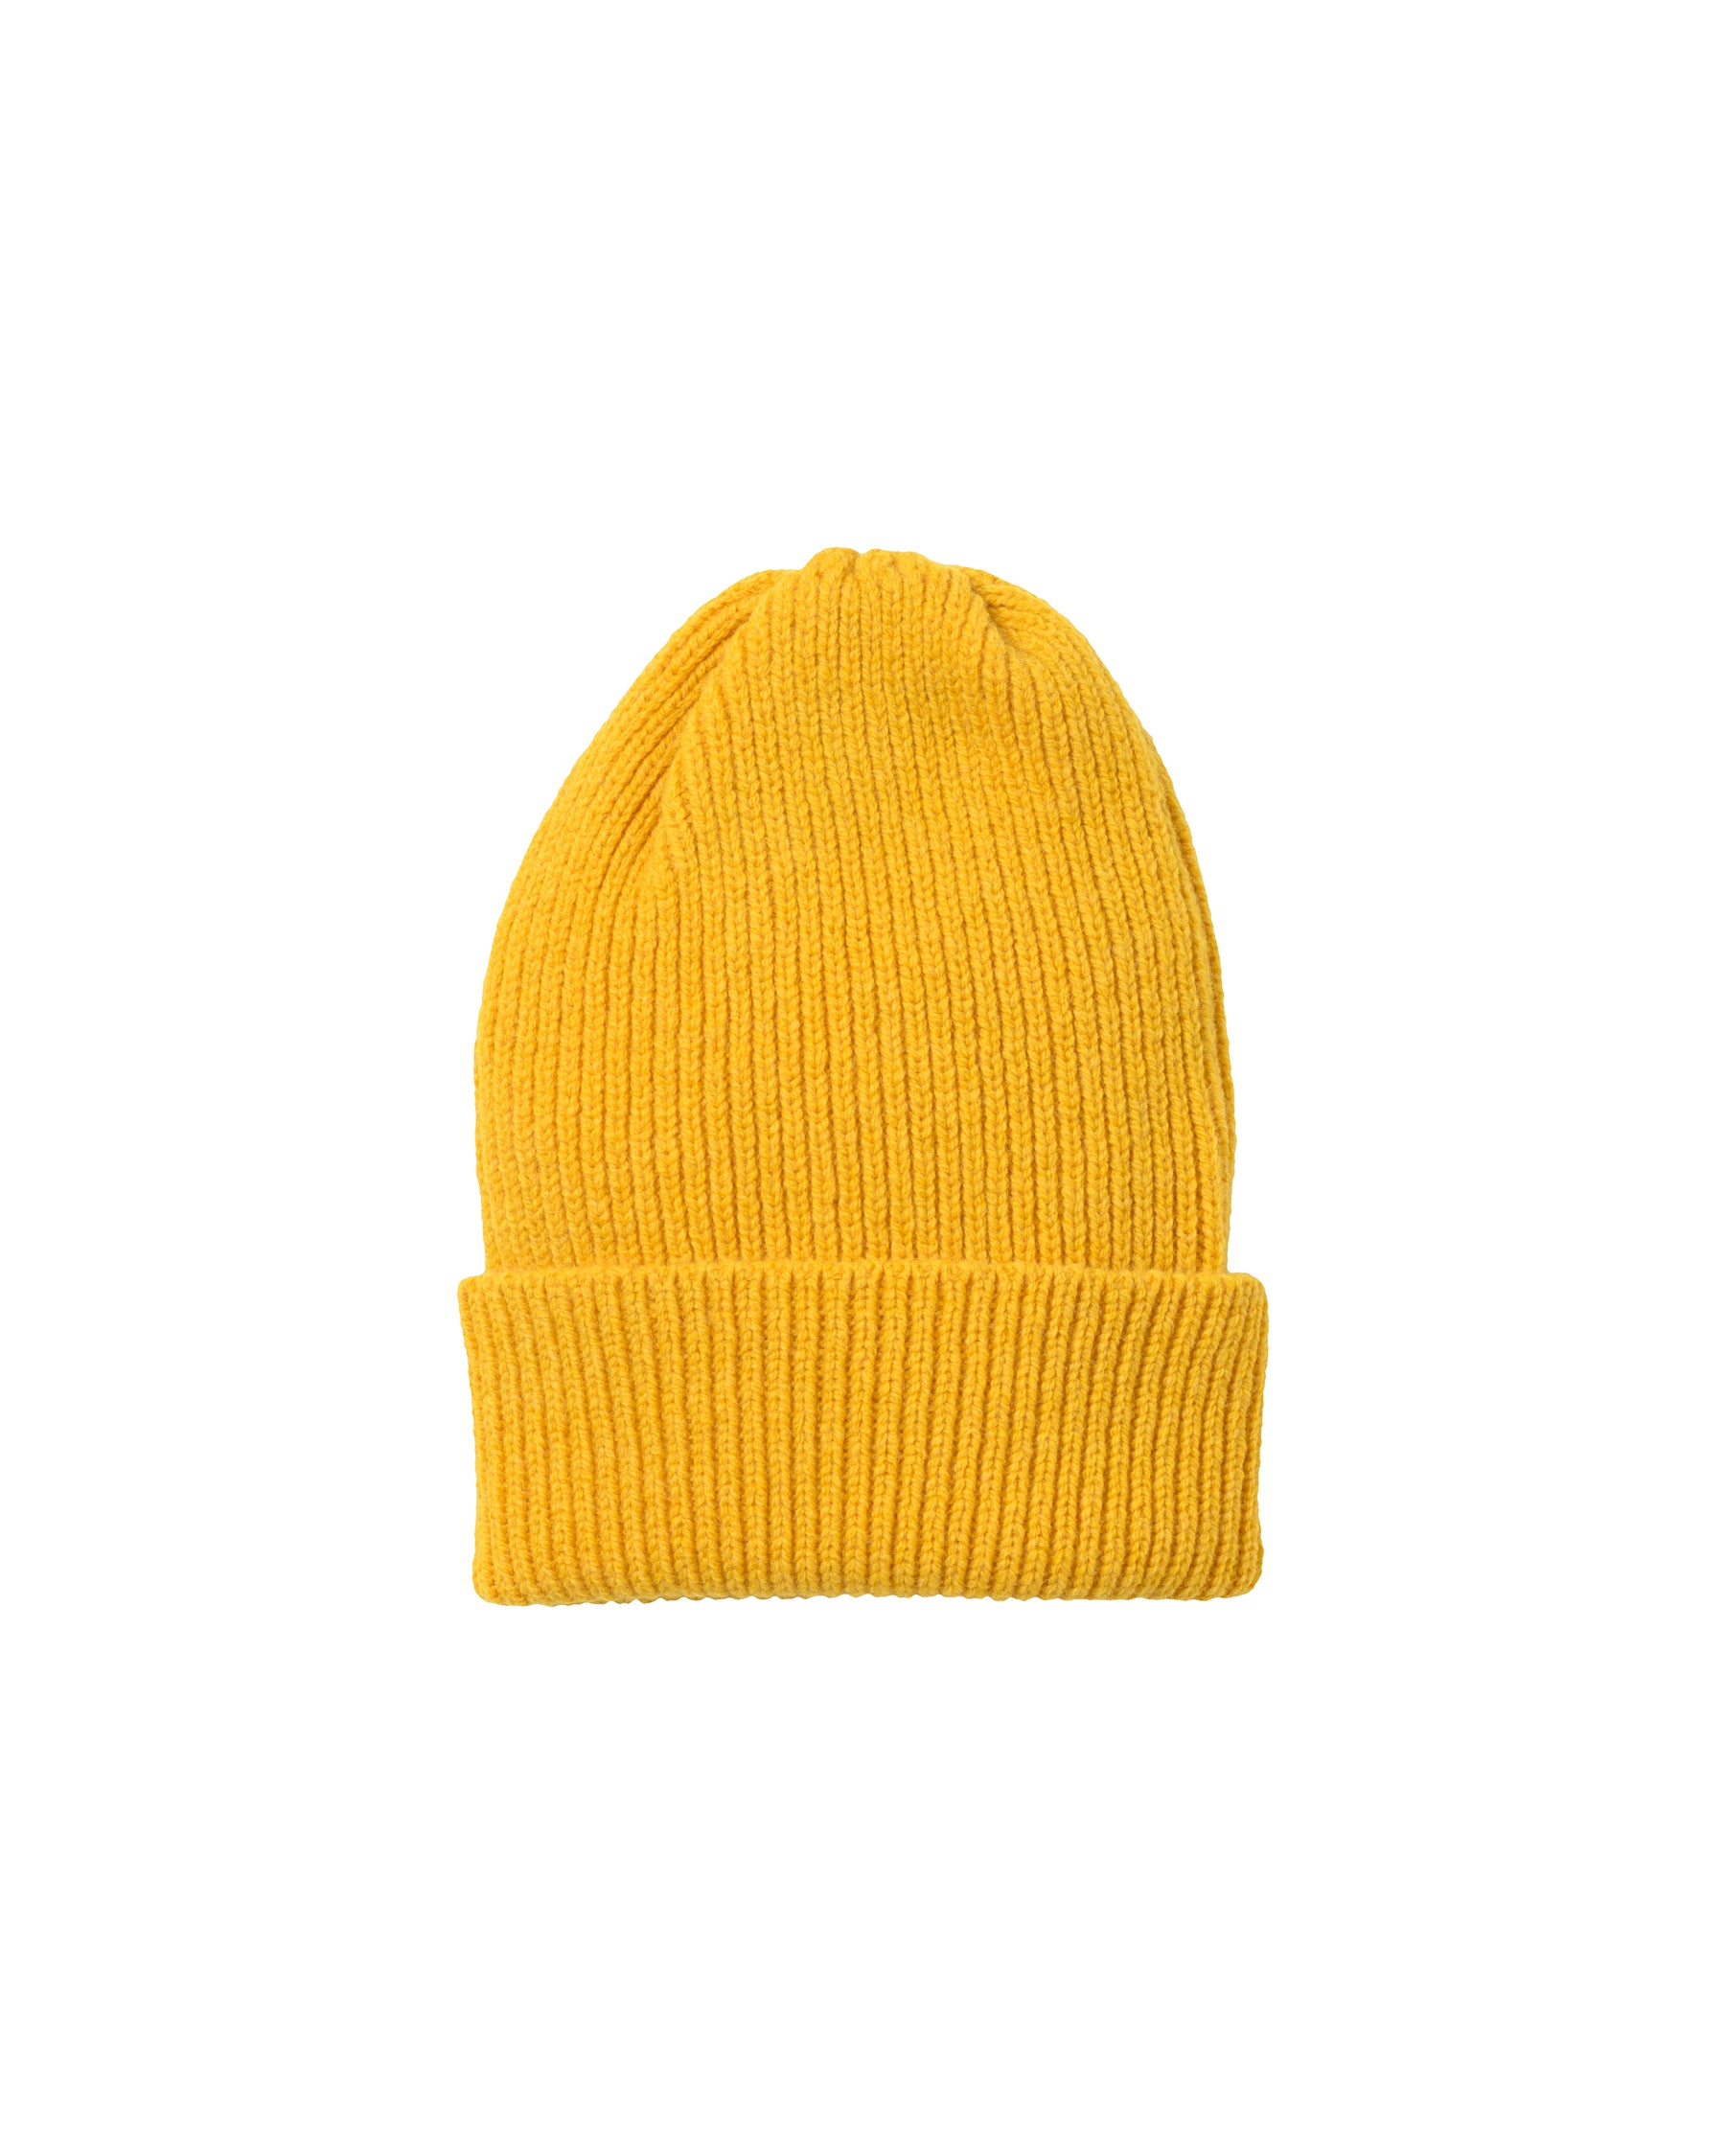 Staple Lambswool Hat • Yellow